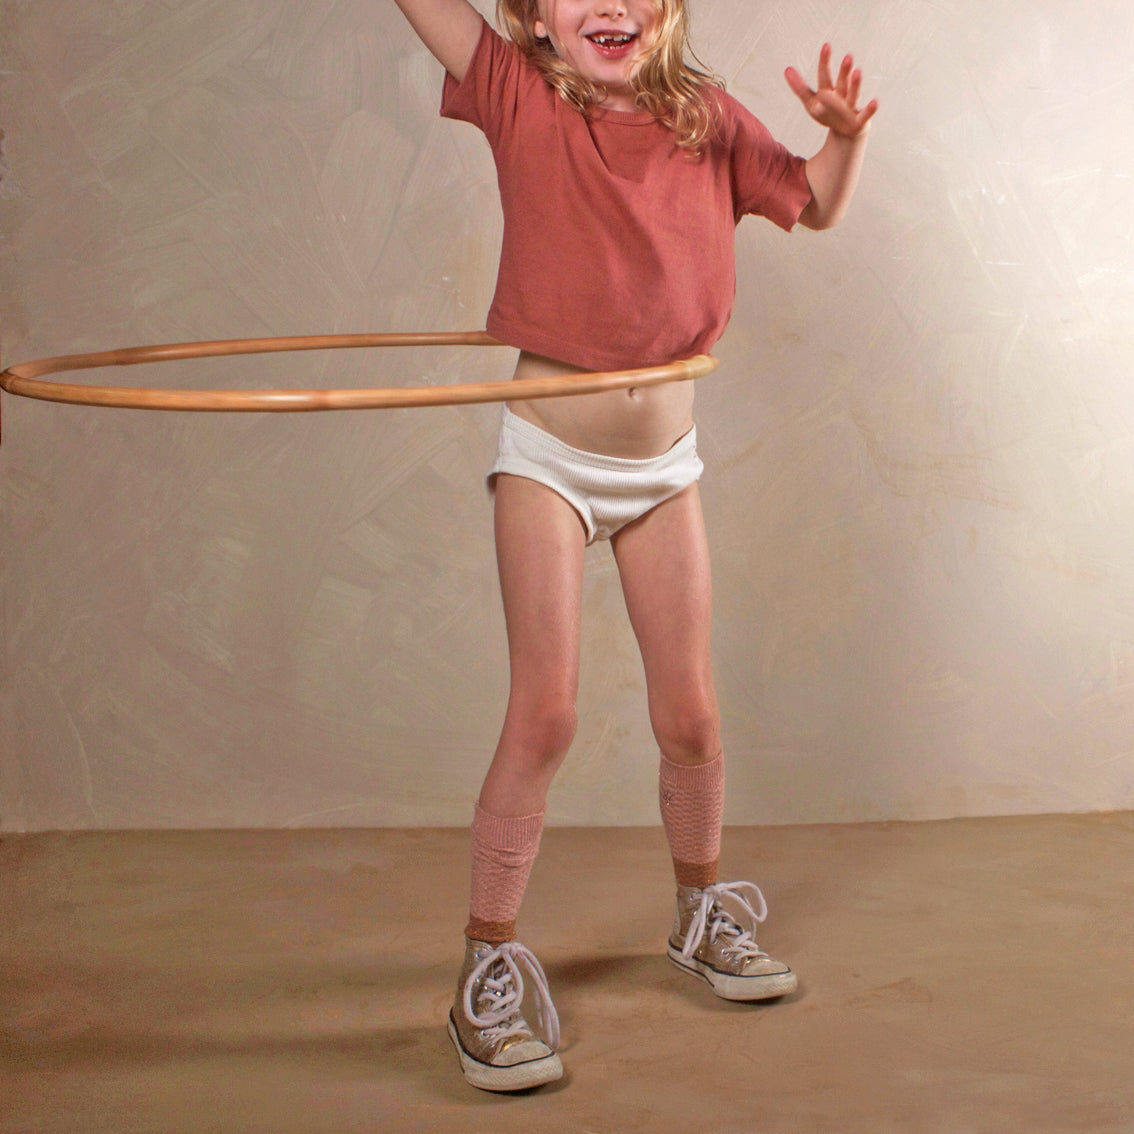 wooden hula hoop and child